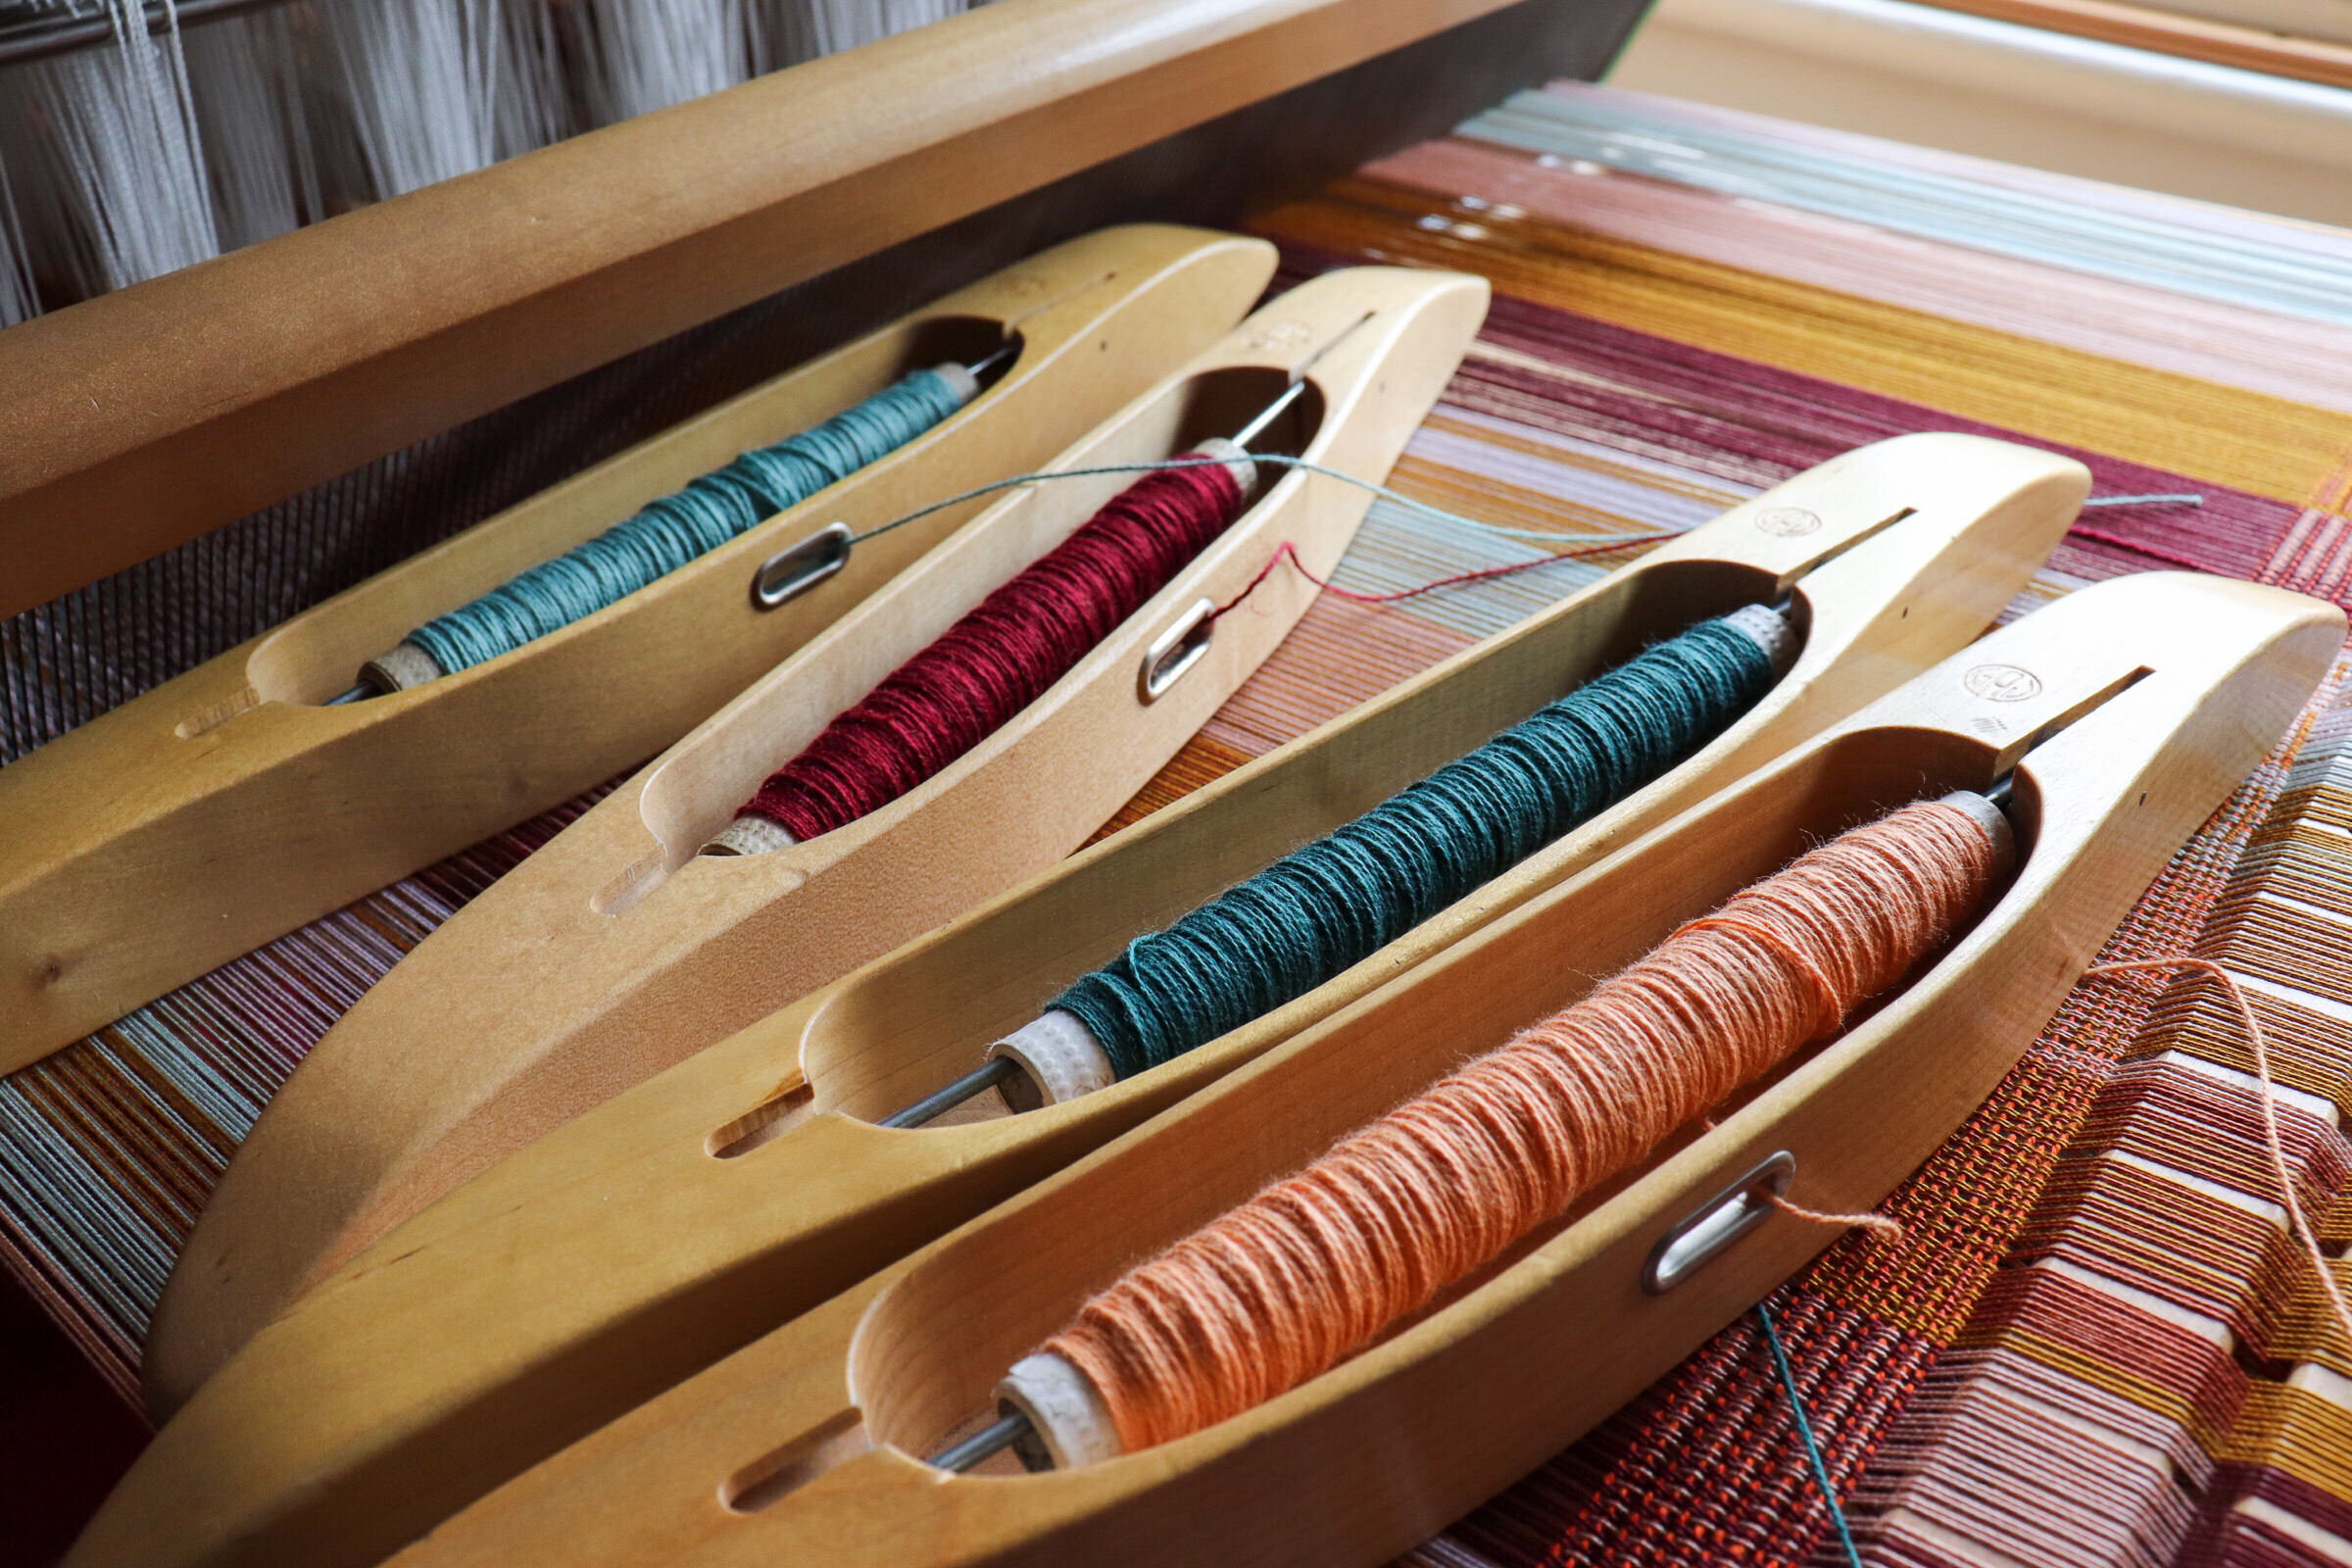 By Cecil hand loom and shuttles with cotton spools